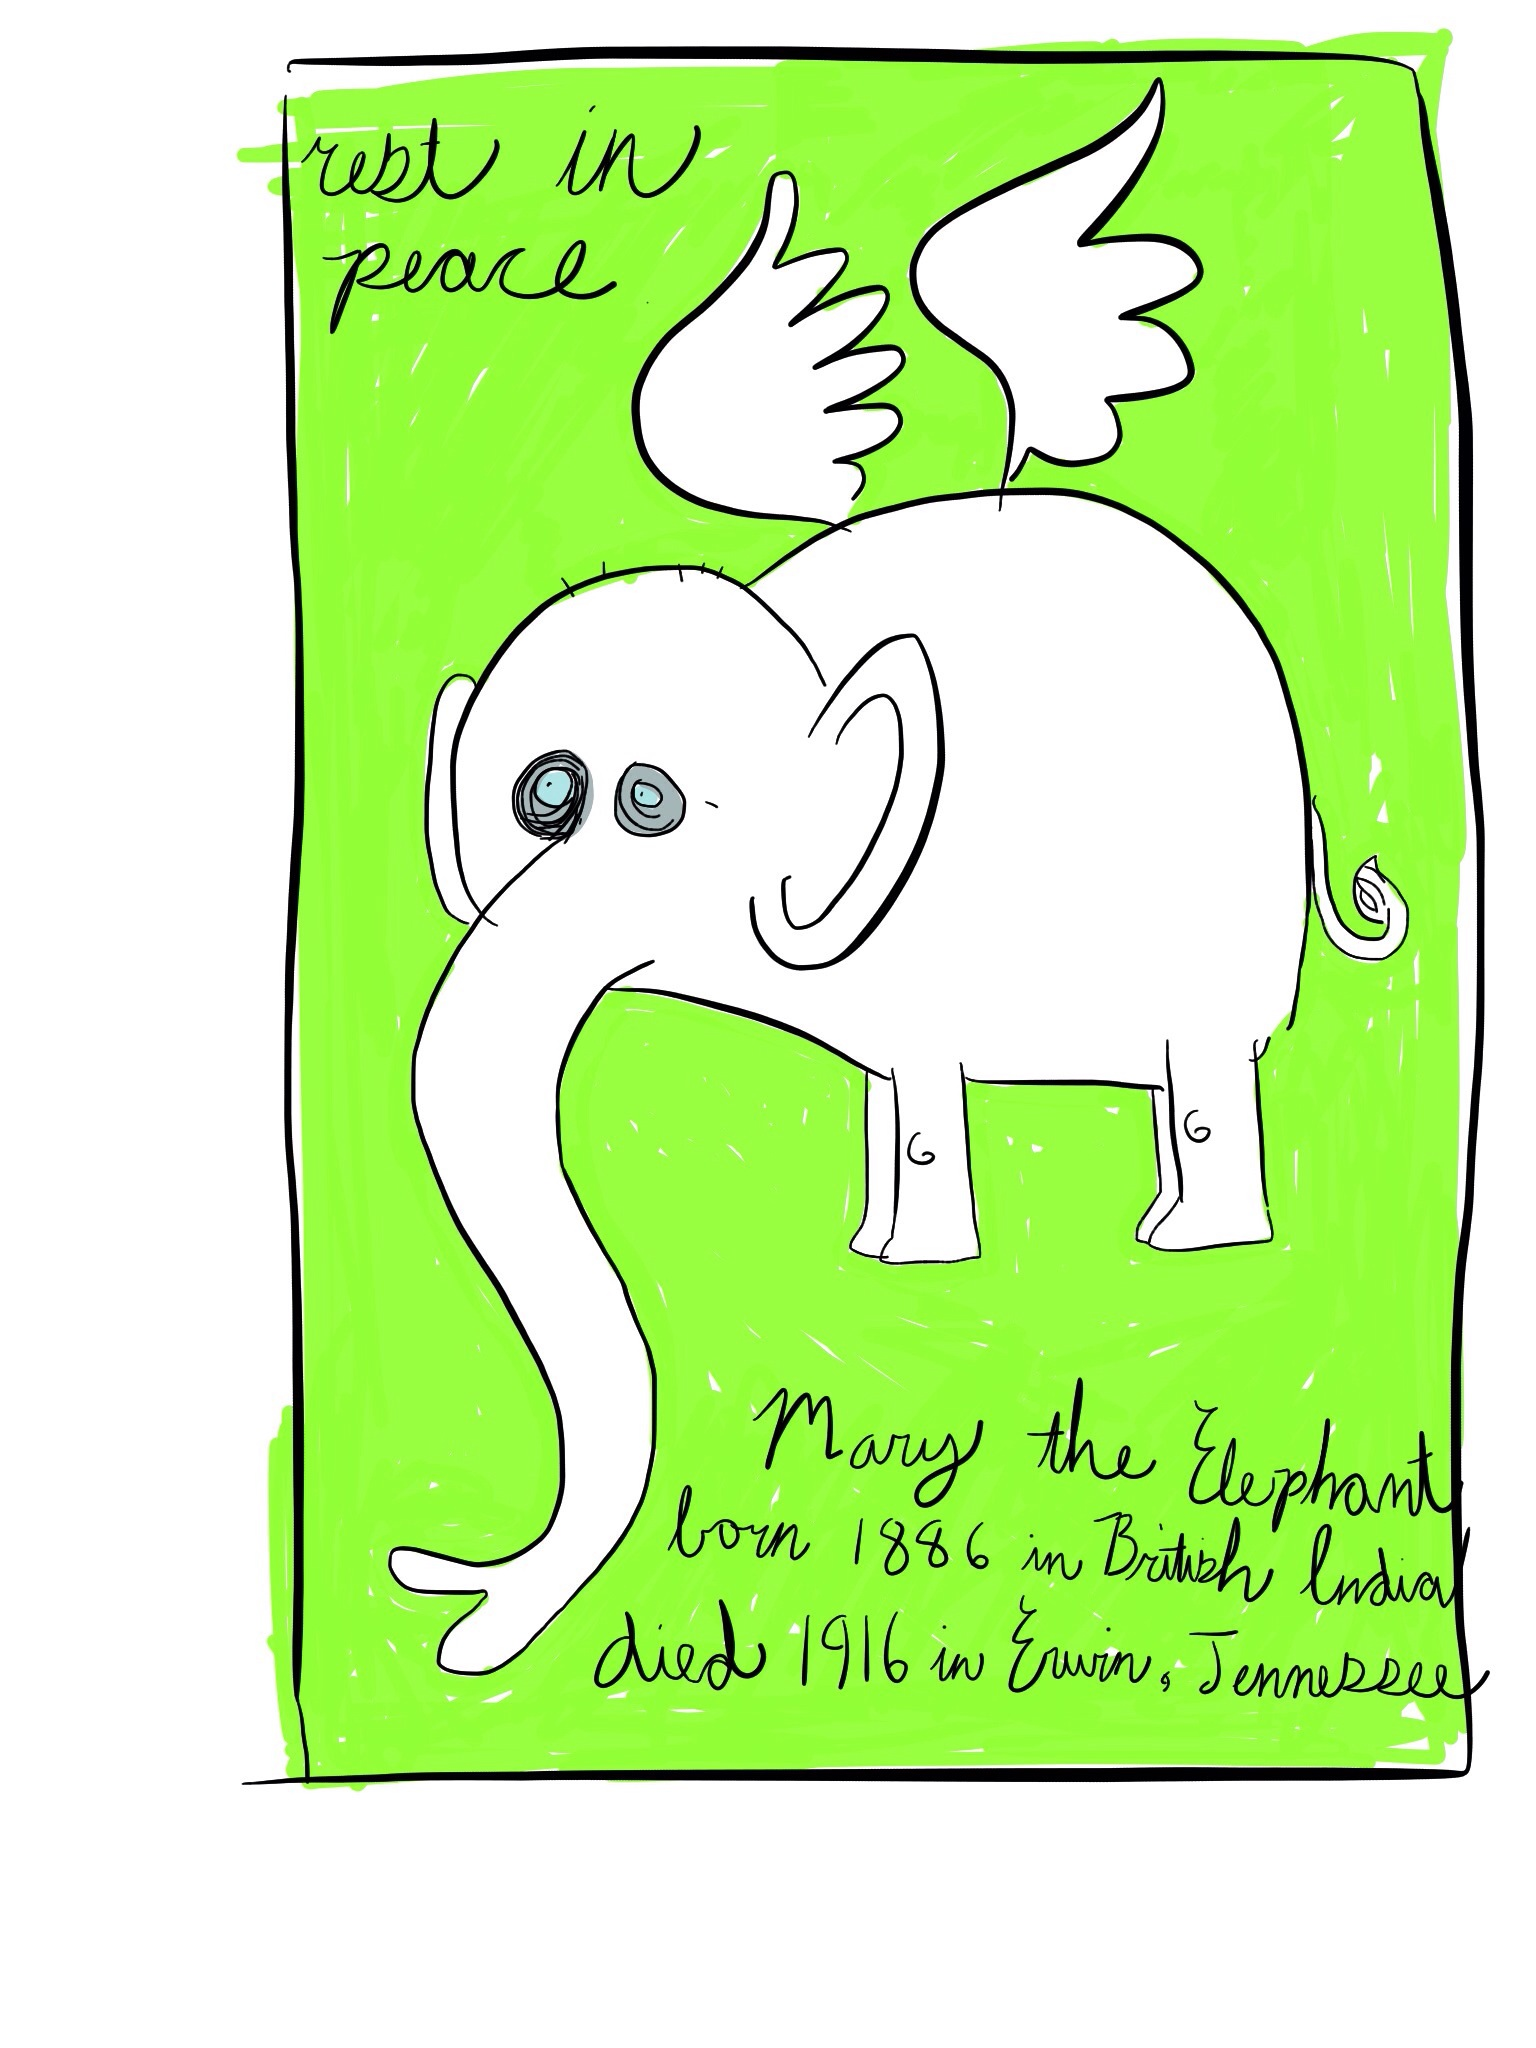 Mary the Elephant